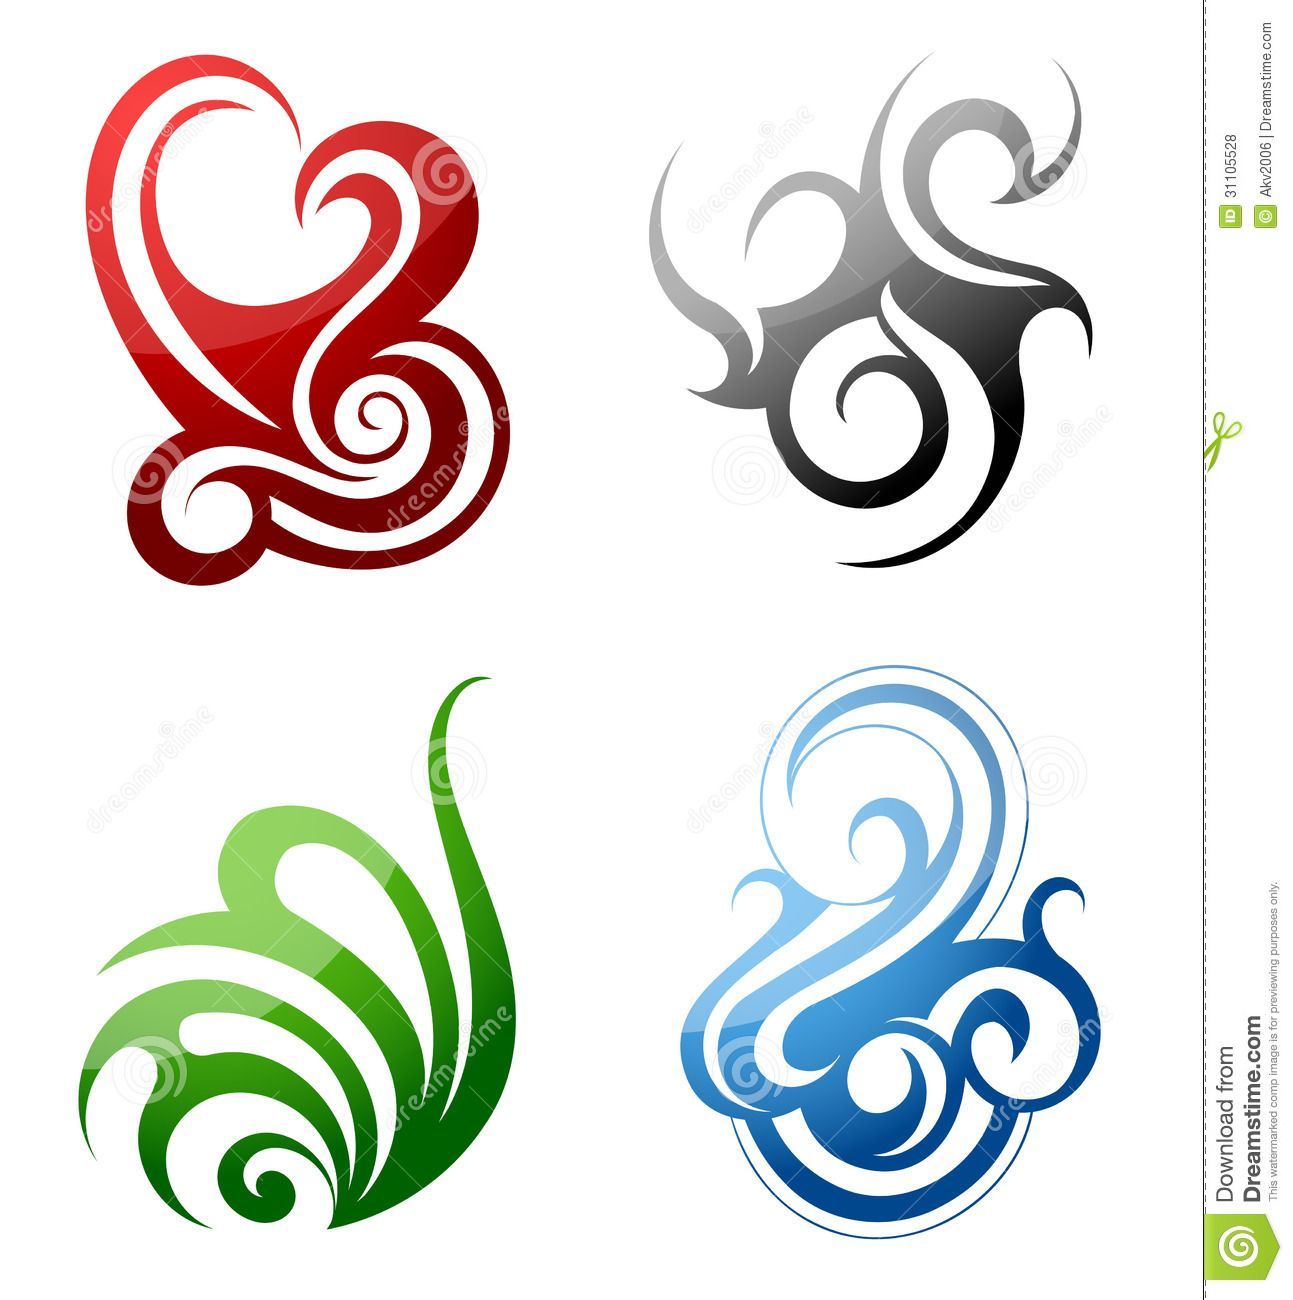 Design Elements Fire Water Grass Wind Set Graphic Tribal Art Style 31105528 Jpg 1293 1300 Elements Tattoo Element Symbols Symbolic Tattoos